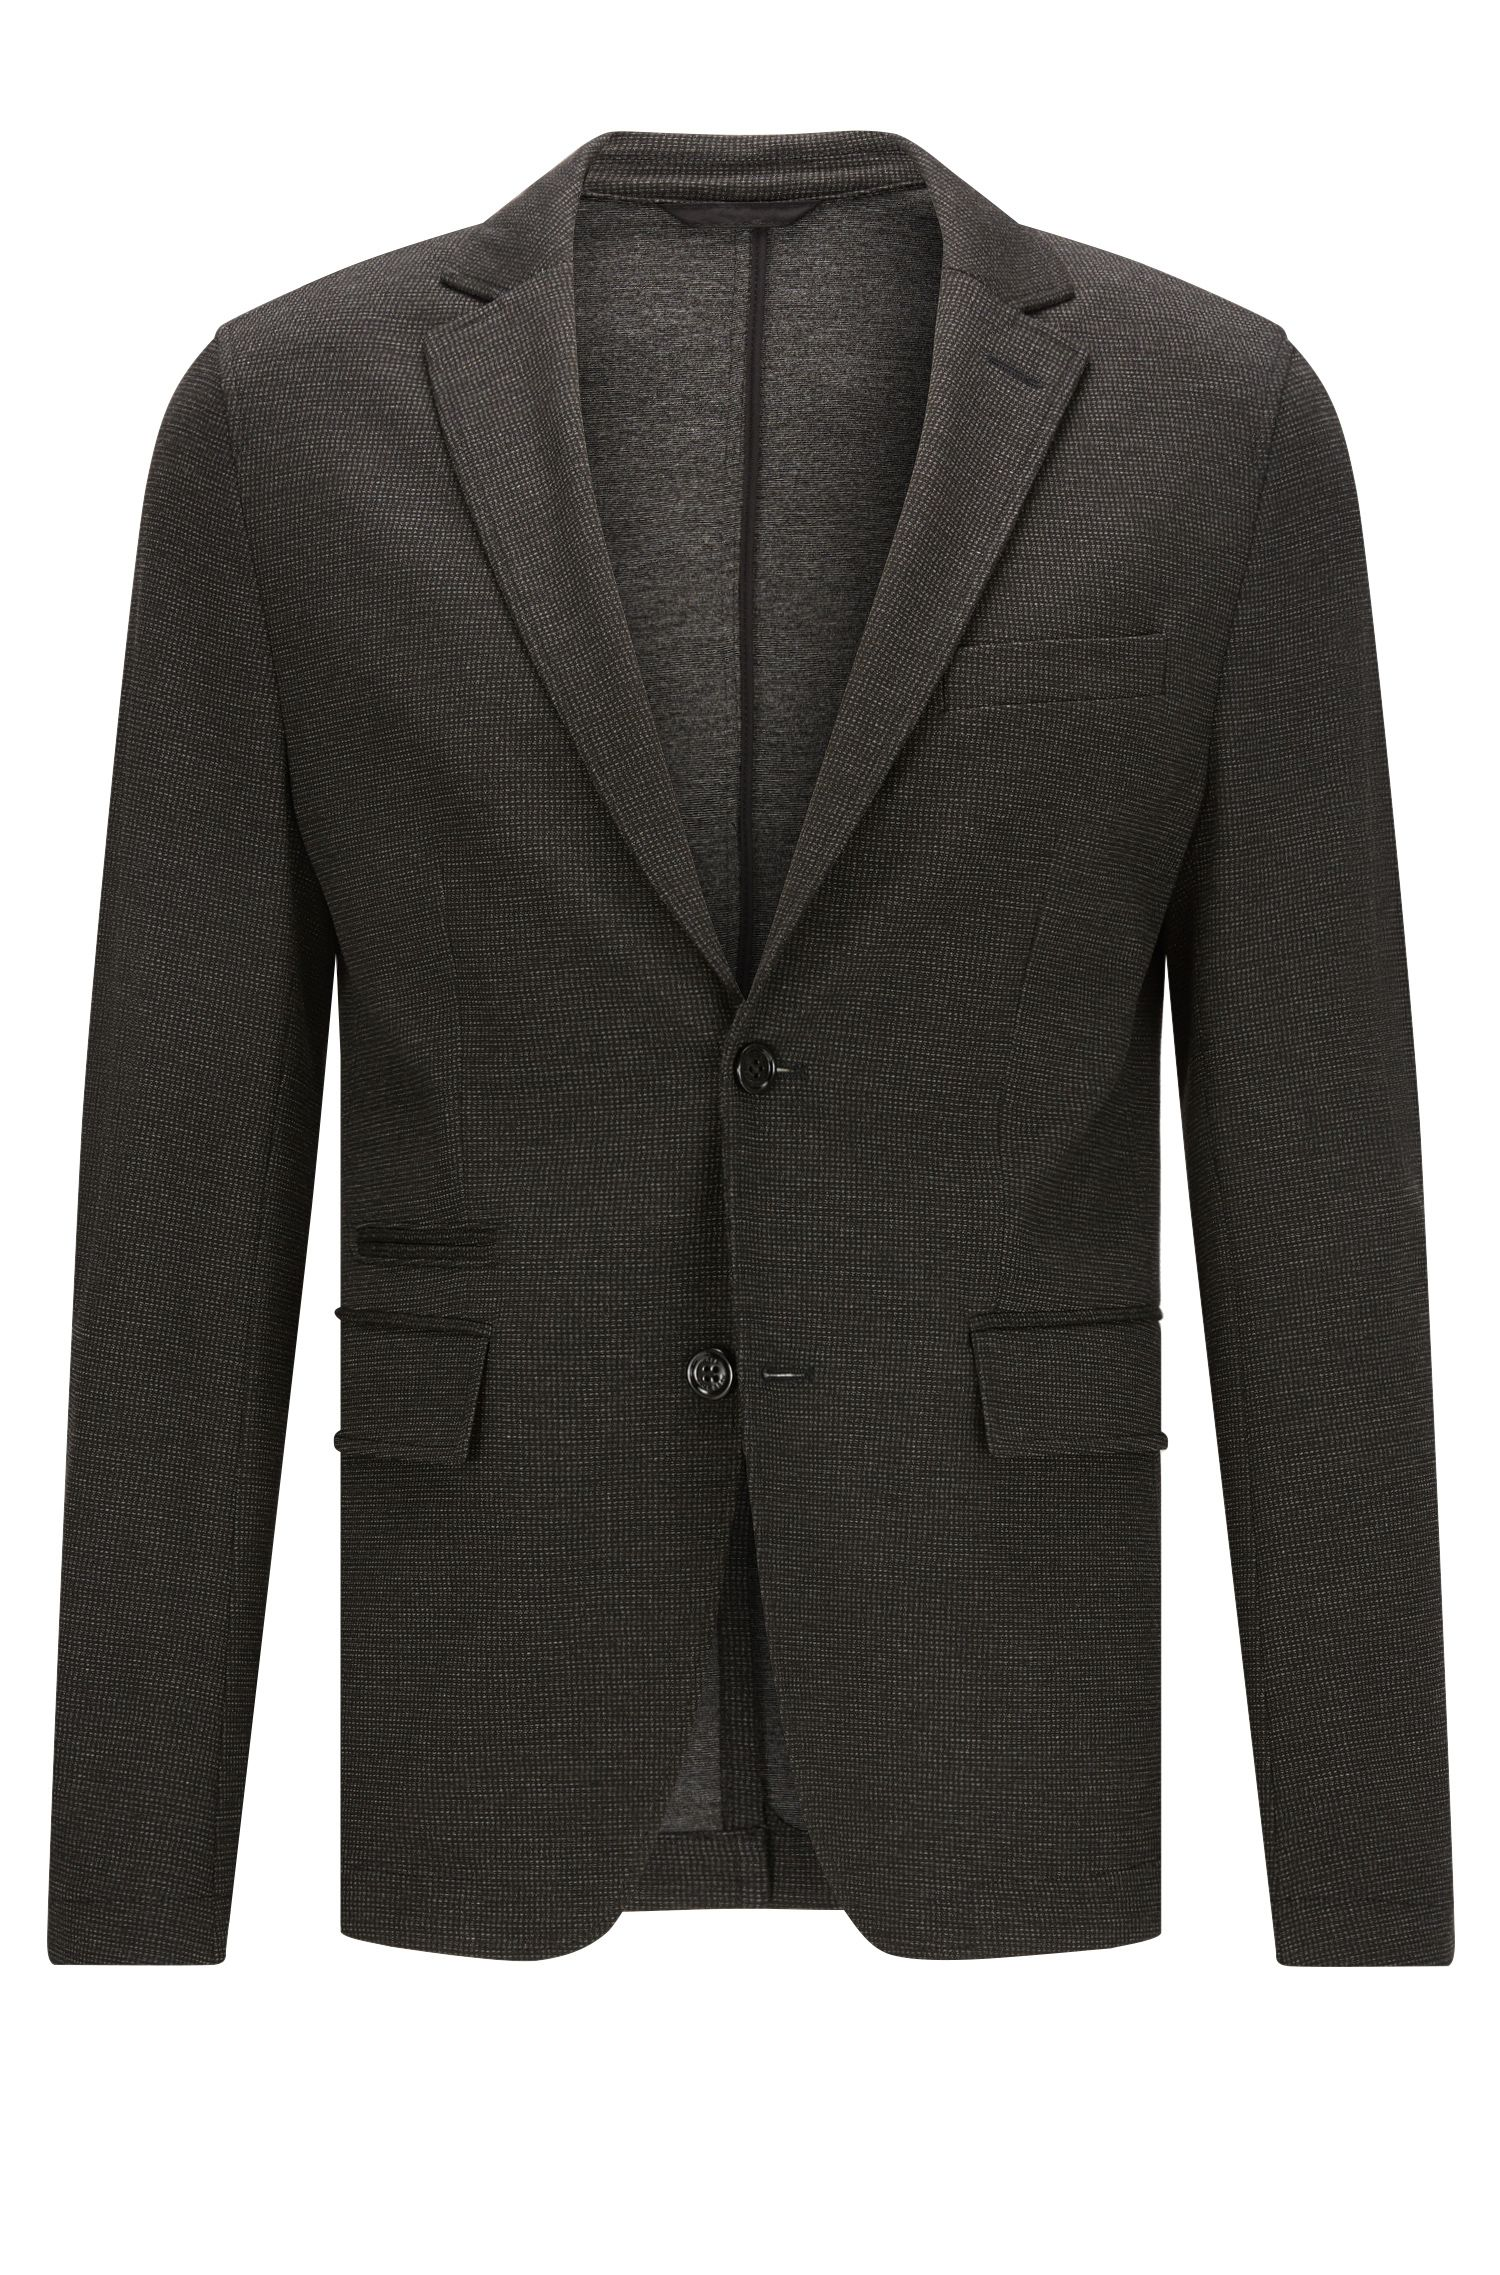 Extra-slim-fit jacket in technical jersey